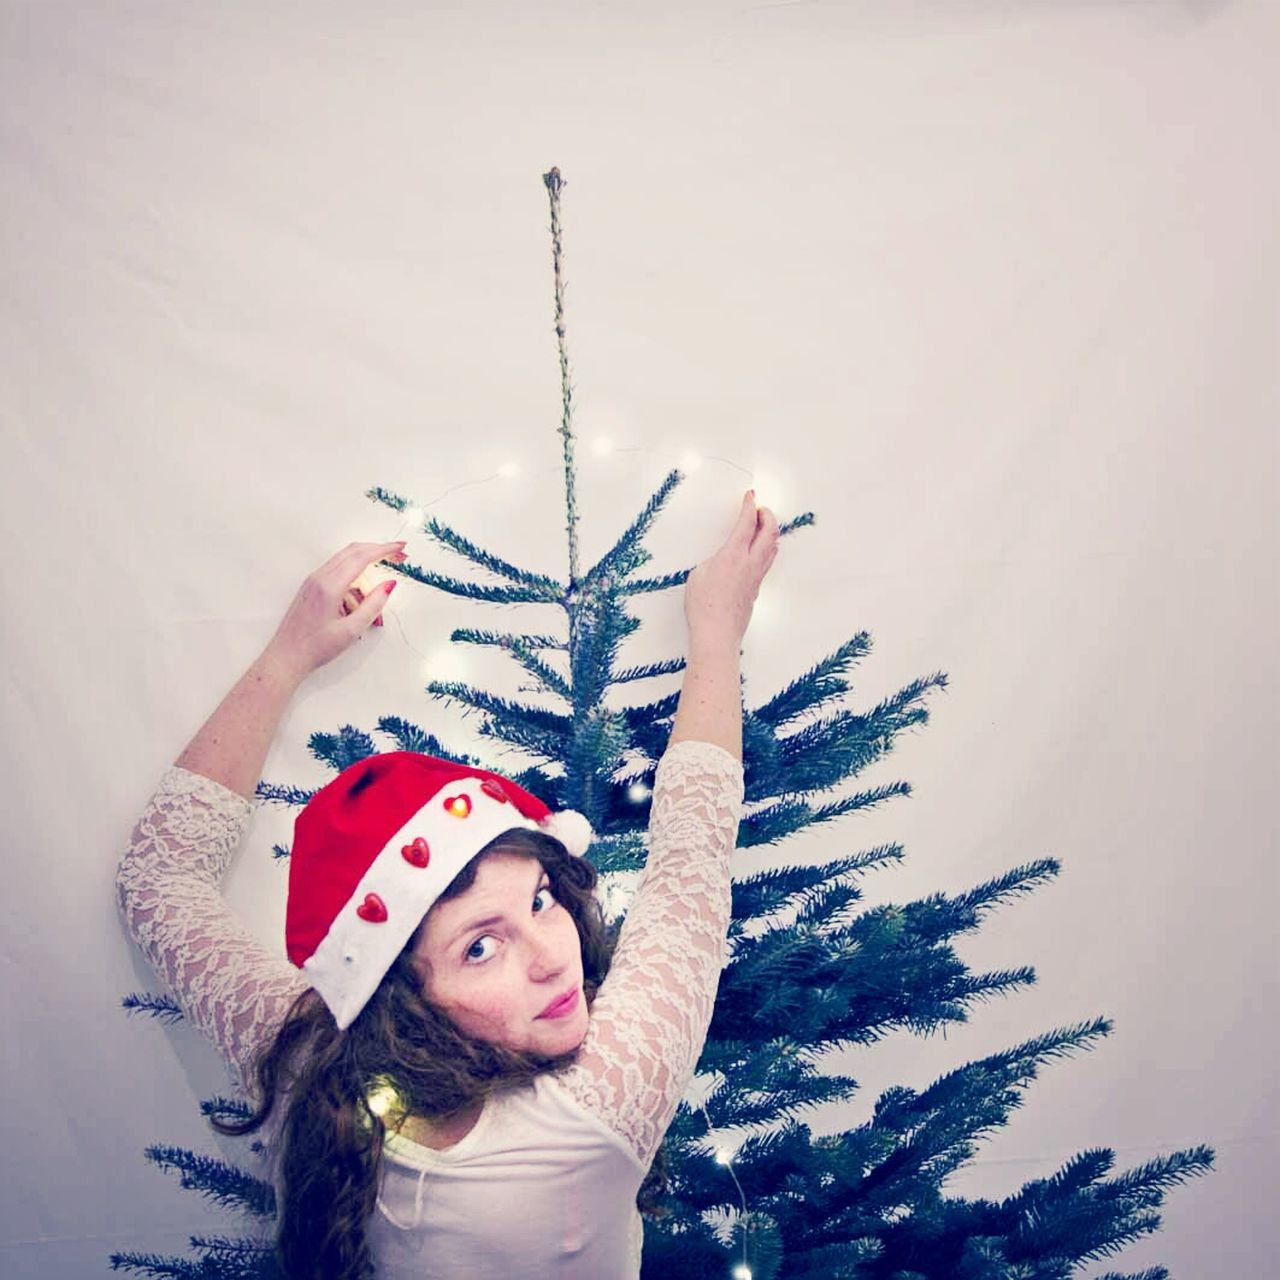 Woman decorating christmas tree over white background